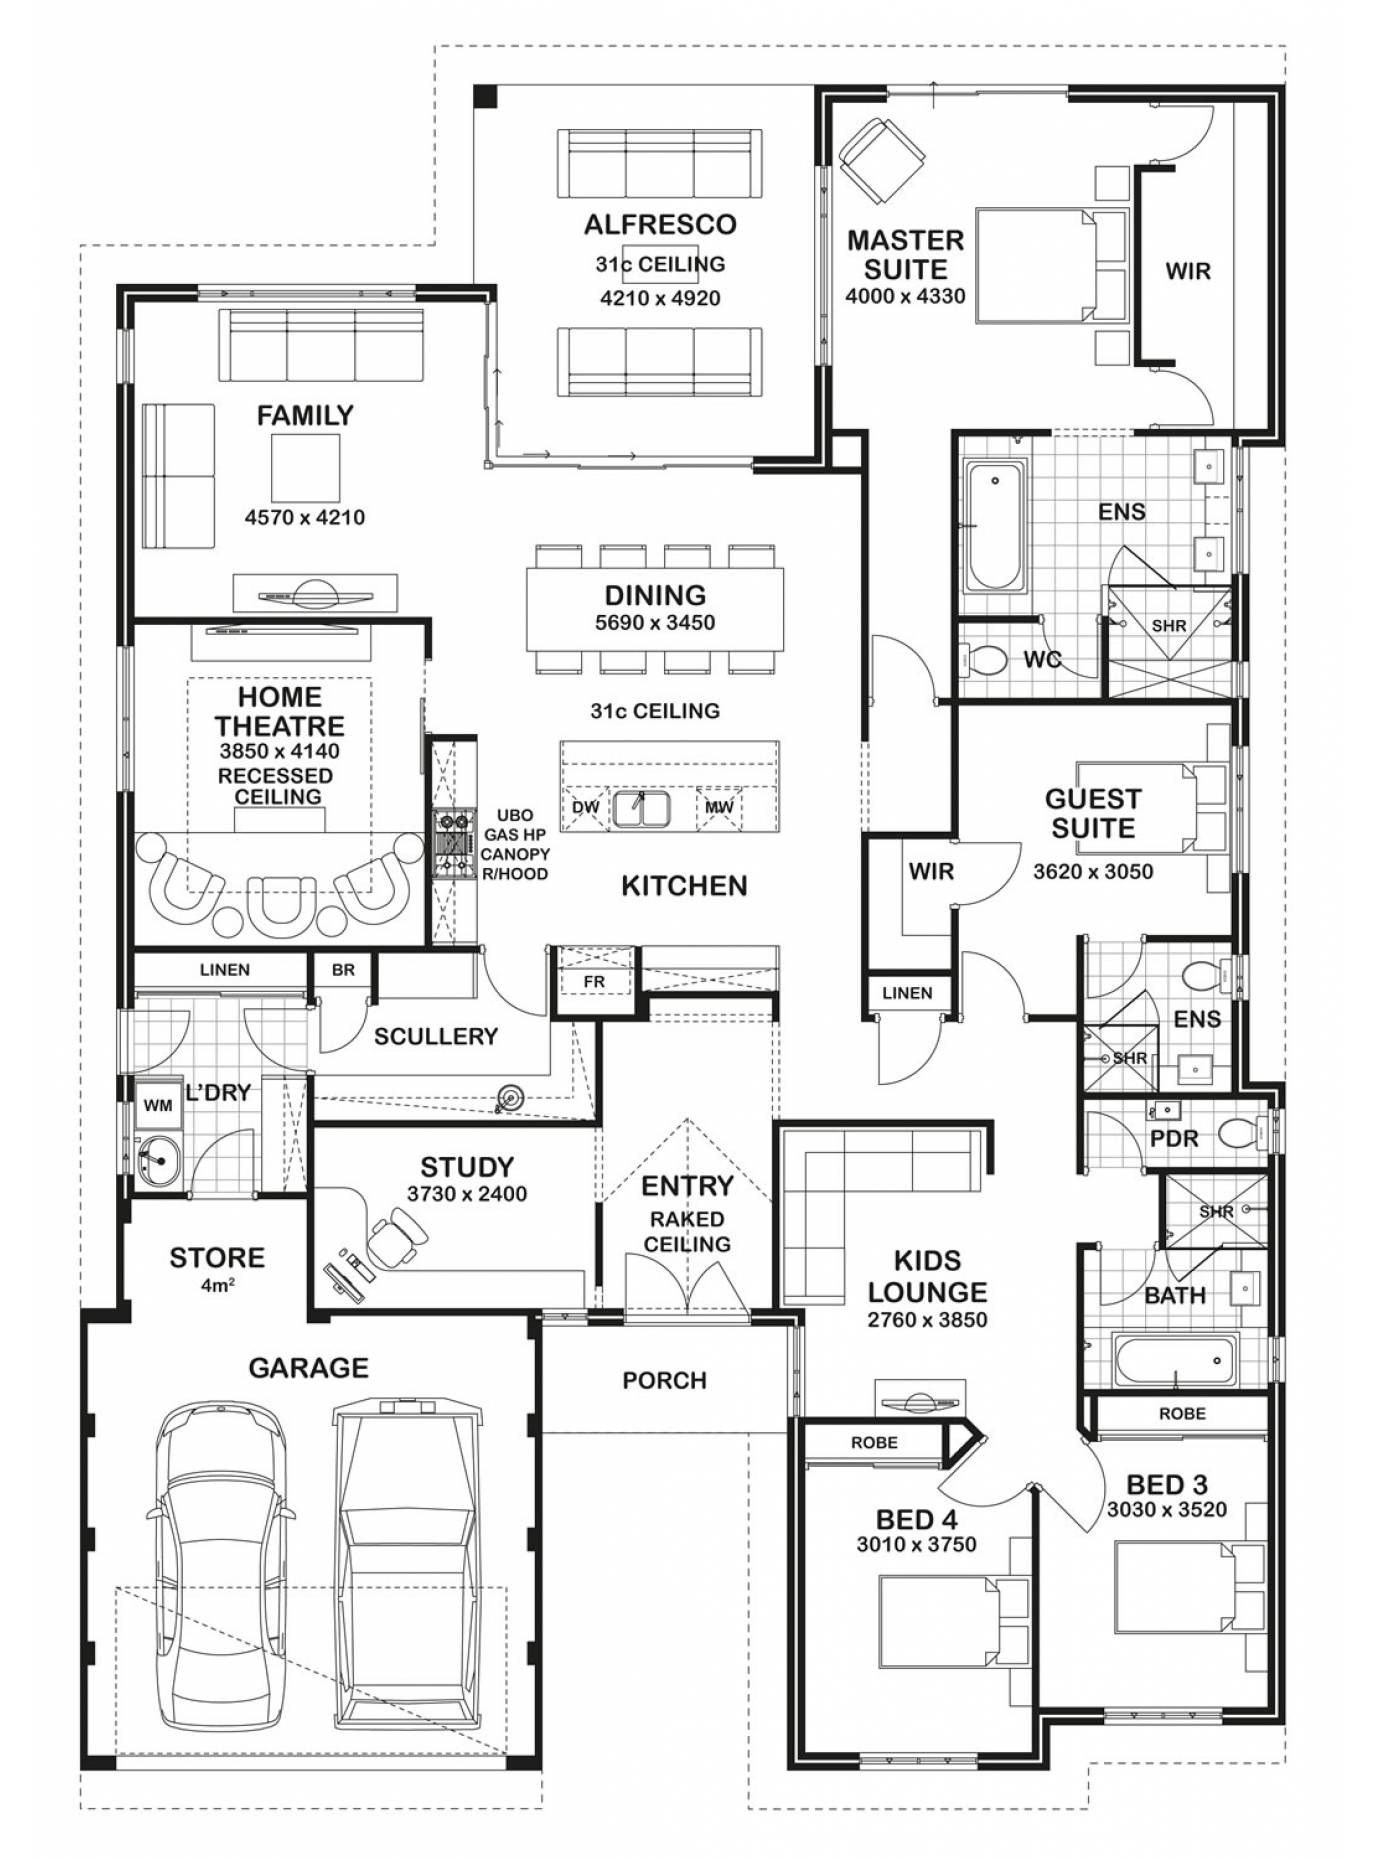 Drawing House Plans App Inspirational Pin by Brianna Borchert On Dream Home In 2020